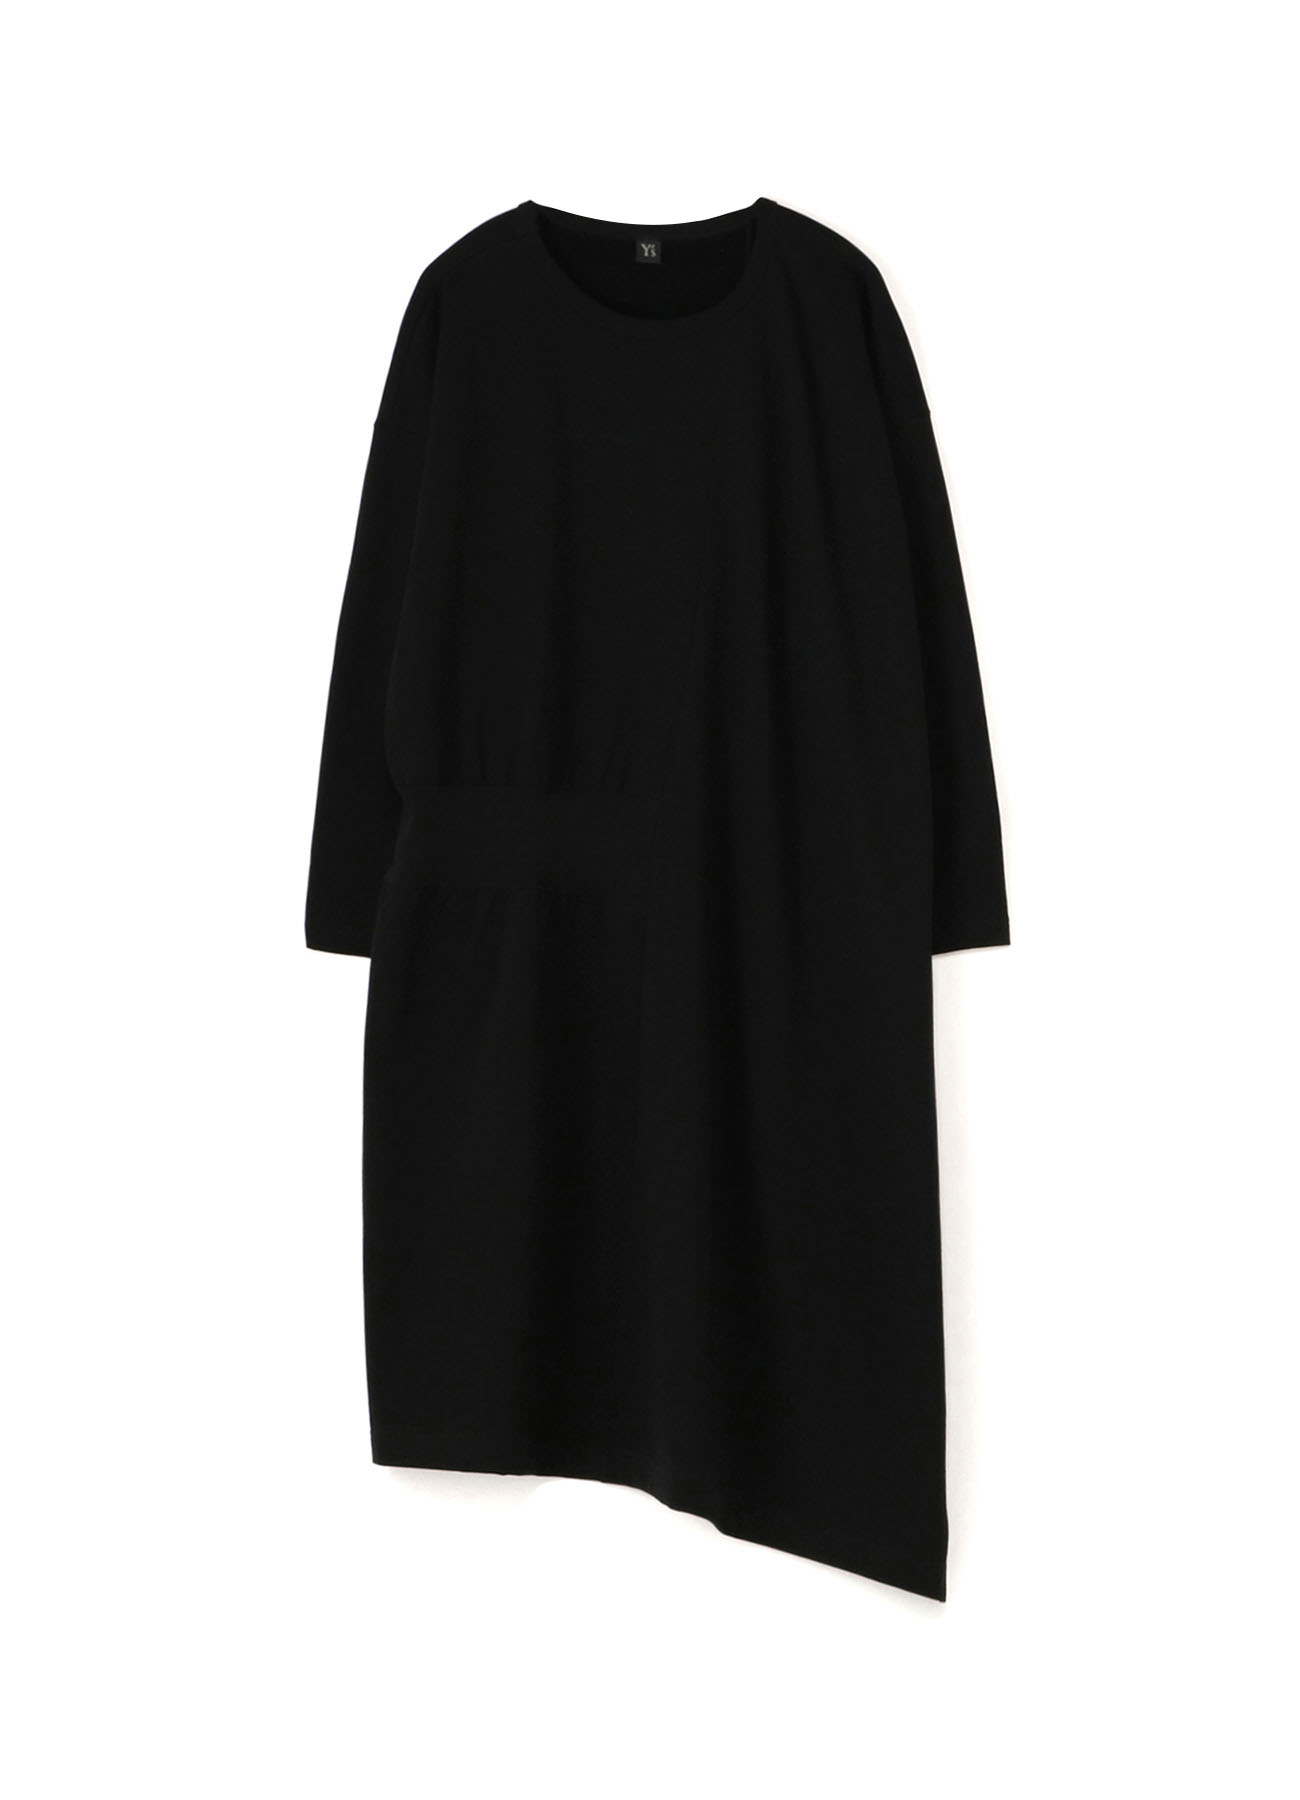 COTTON FLEECE VERITCAL PATCH DRESS